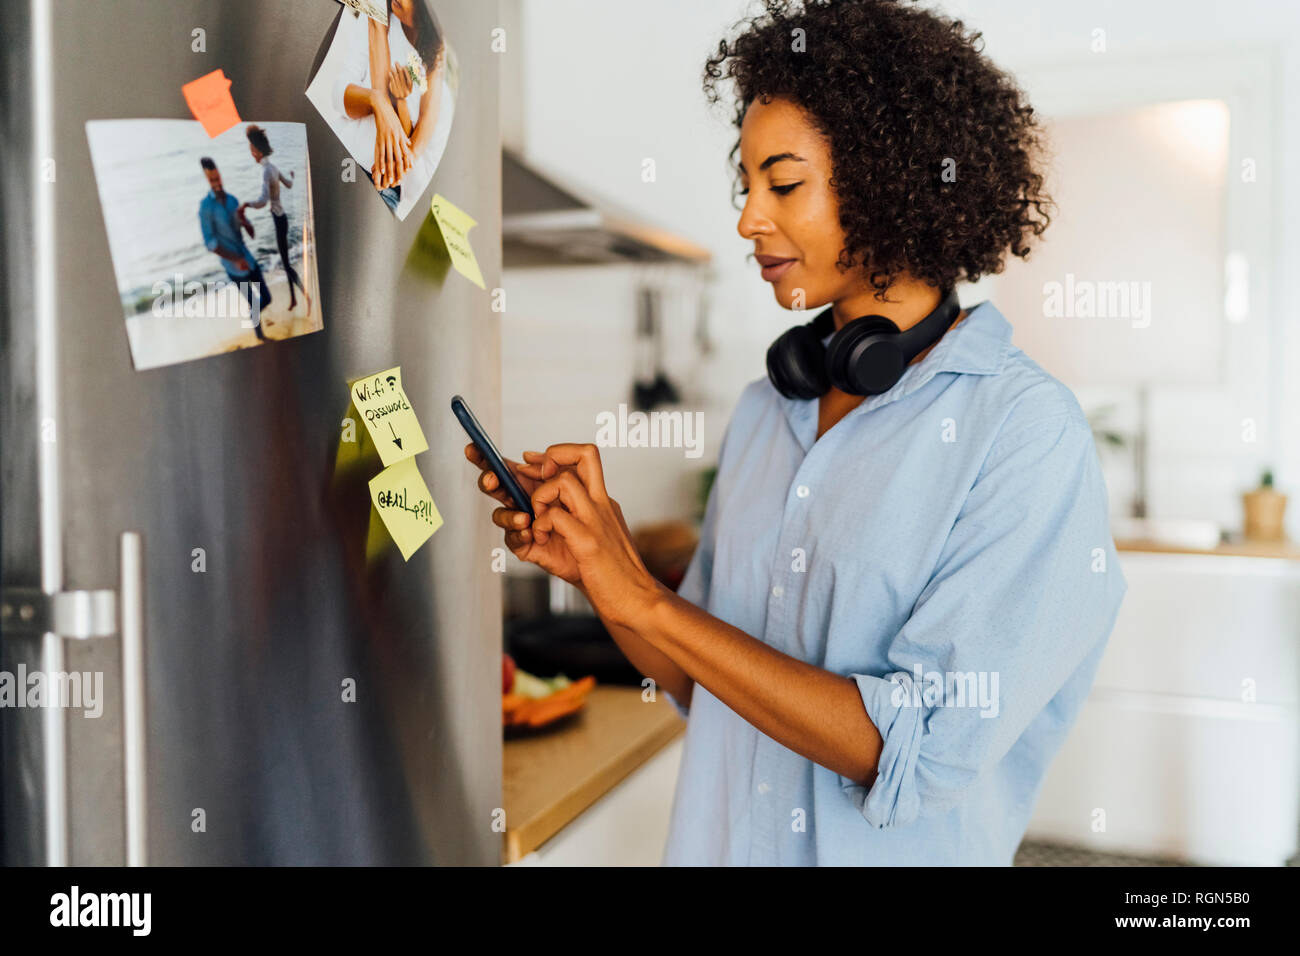 Woman in her kitchen in the morning, posting sticky  notes on the fridge - Stock Image